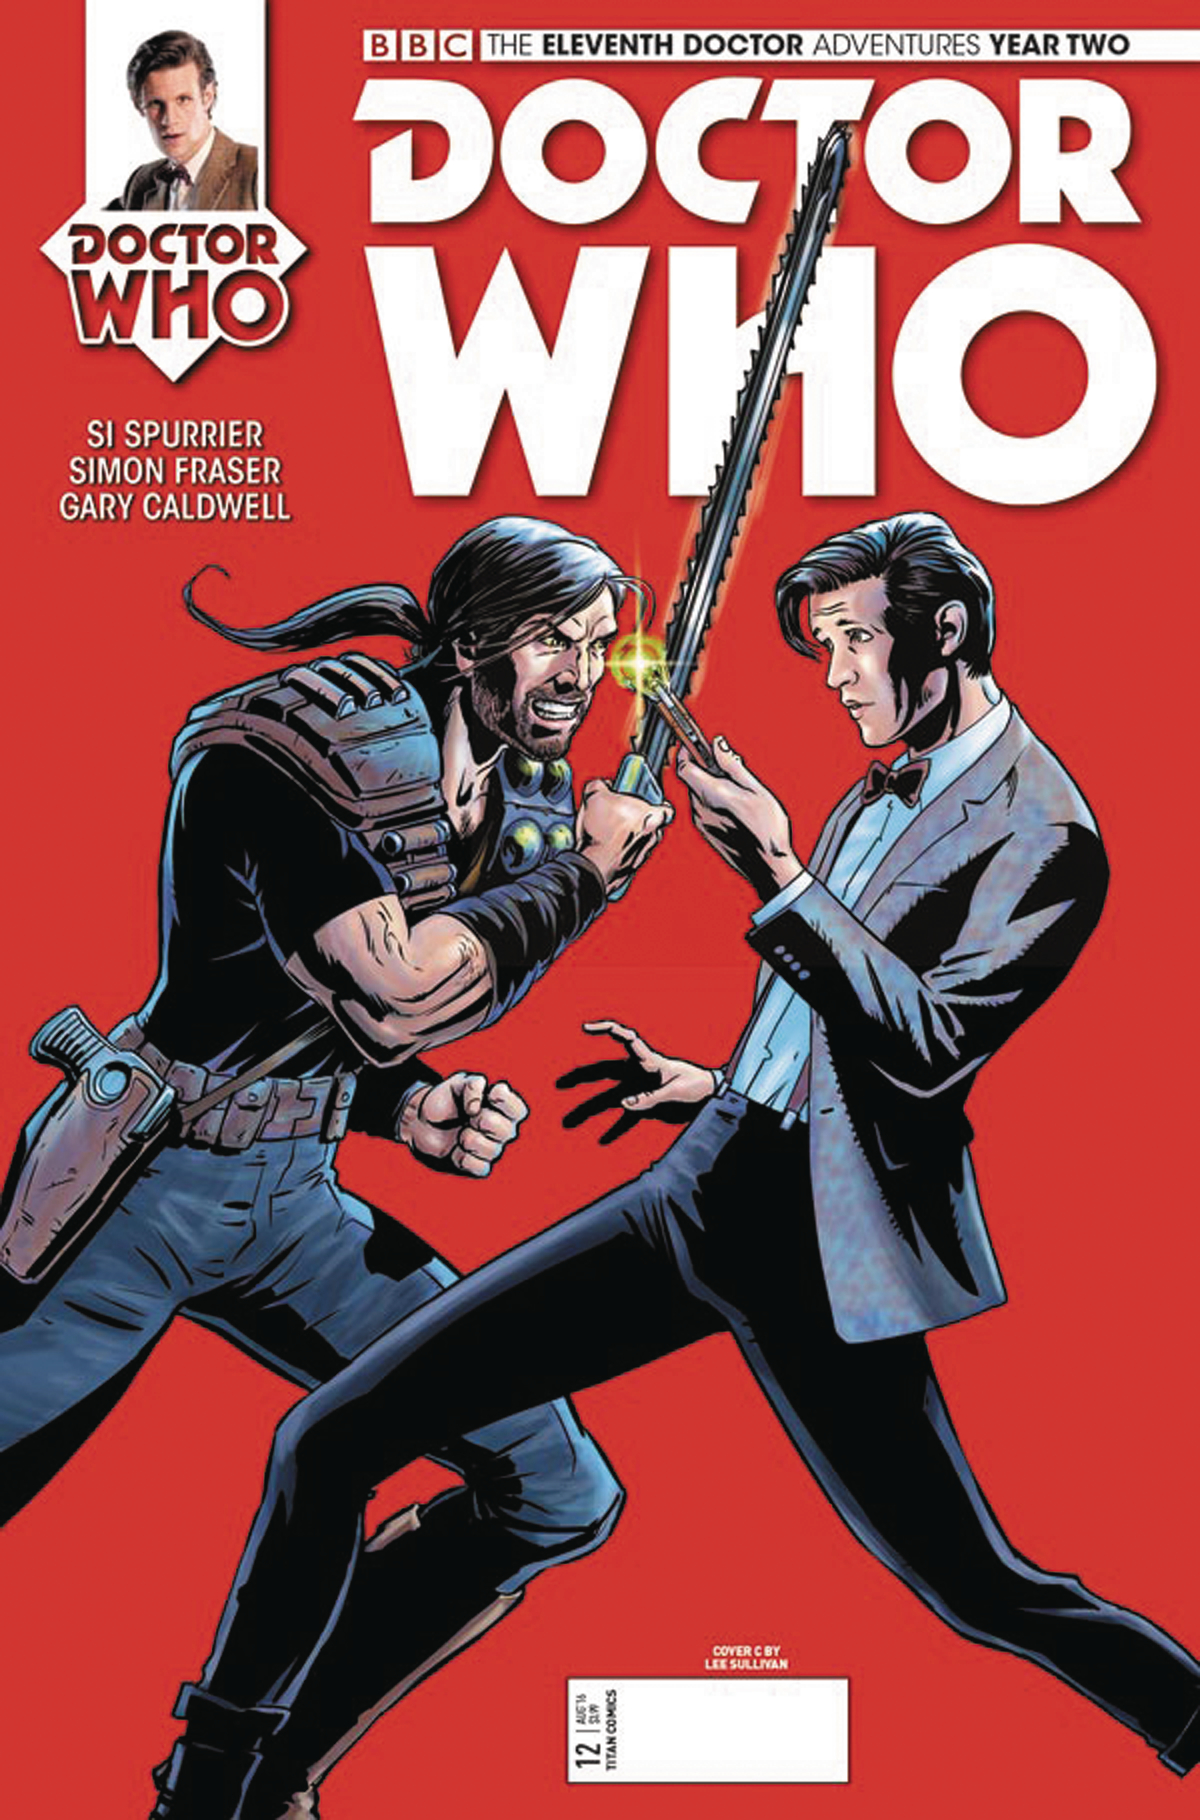 DOCTOR WHO 11TH YEAR TWO #12 CVR C SULLIVAN